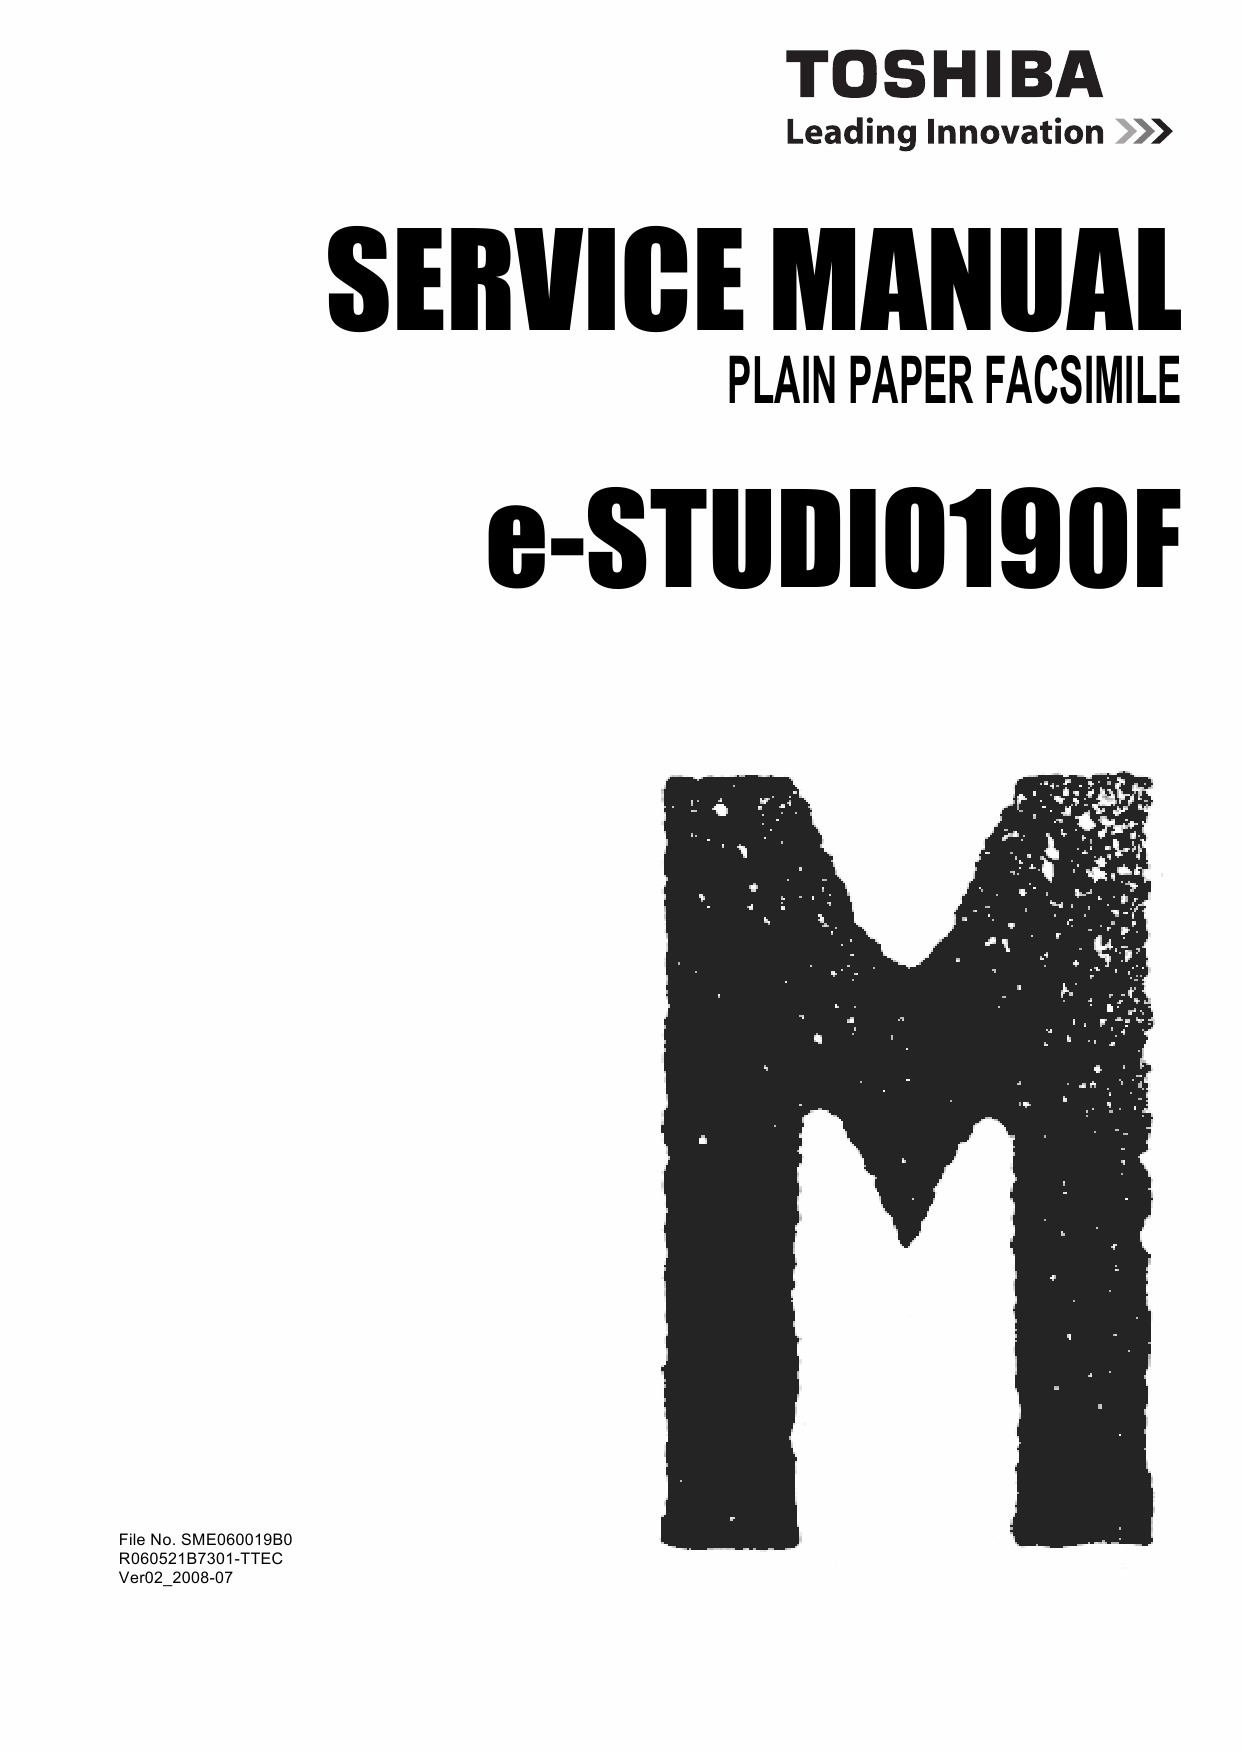 TOSHIBA e-STUDIO 190F Service Manual